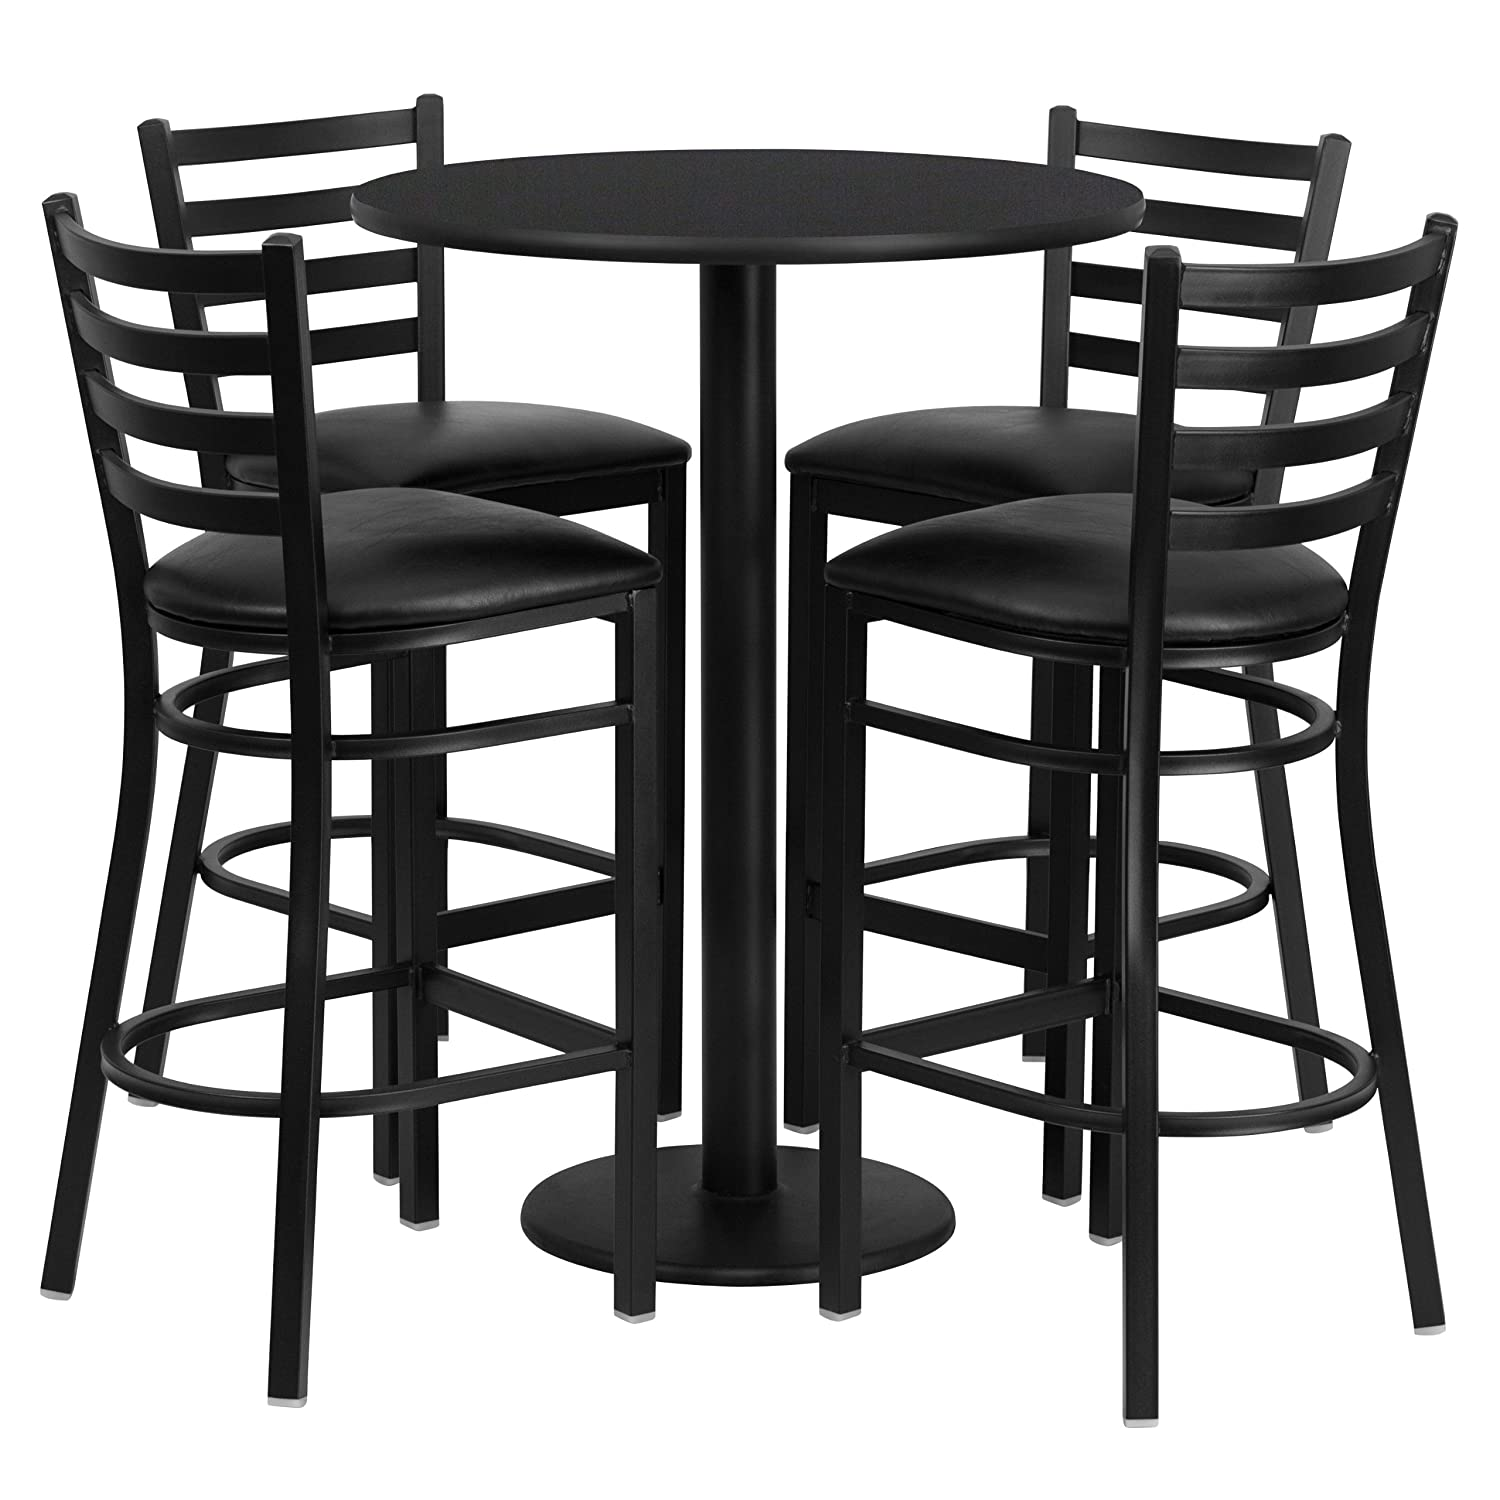 Amazon.com Flash Furniture 30u0027u0027 Round Black Laminate Table Set with 4 Ladder Back Metal Barstools - Black Vinyl Seat Kitchen u0026 Dining  sc 1 st  Amazon.com : kitchen table bar stools - islam-shia.org